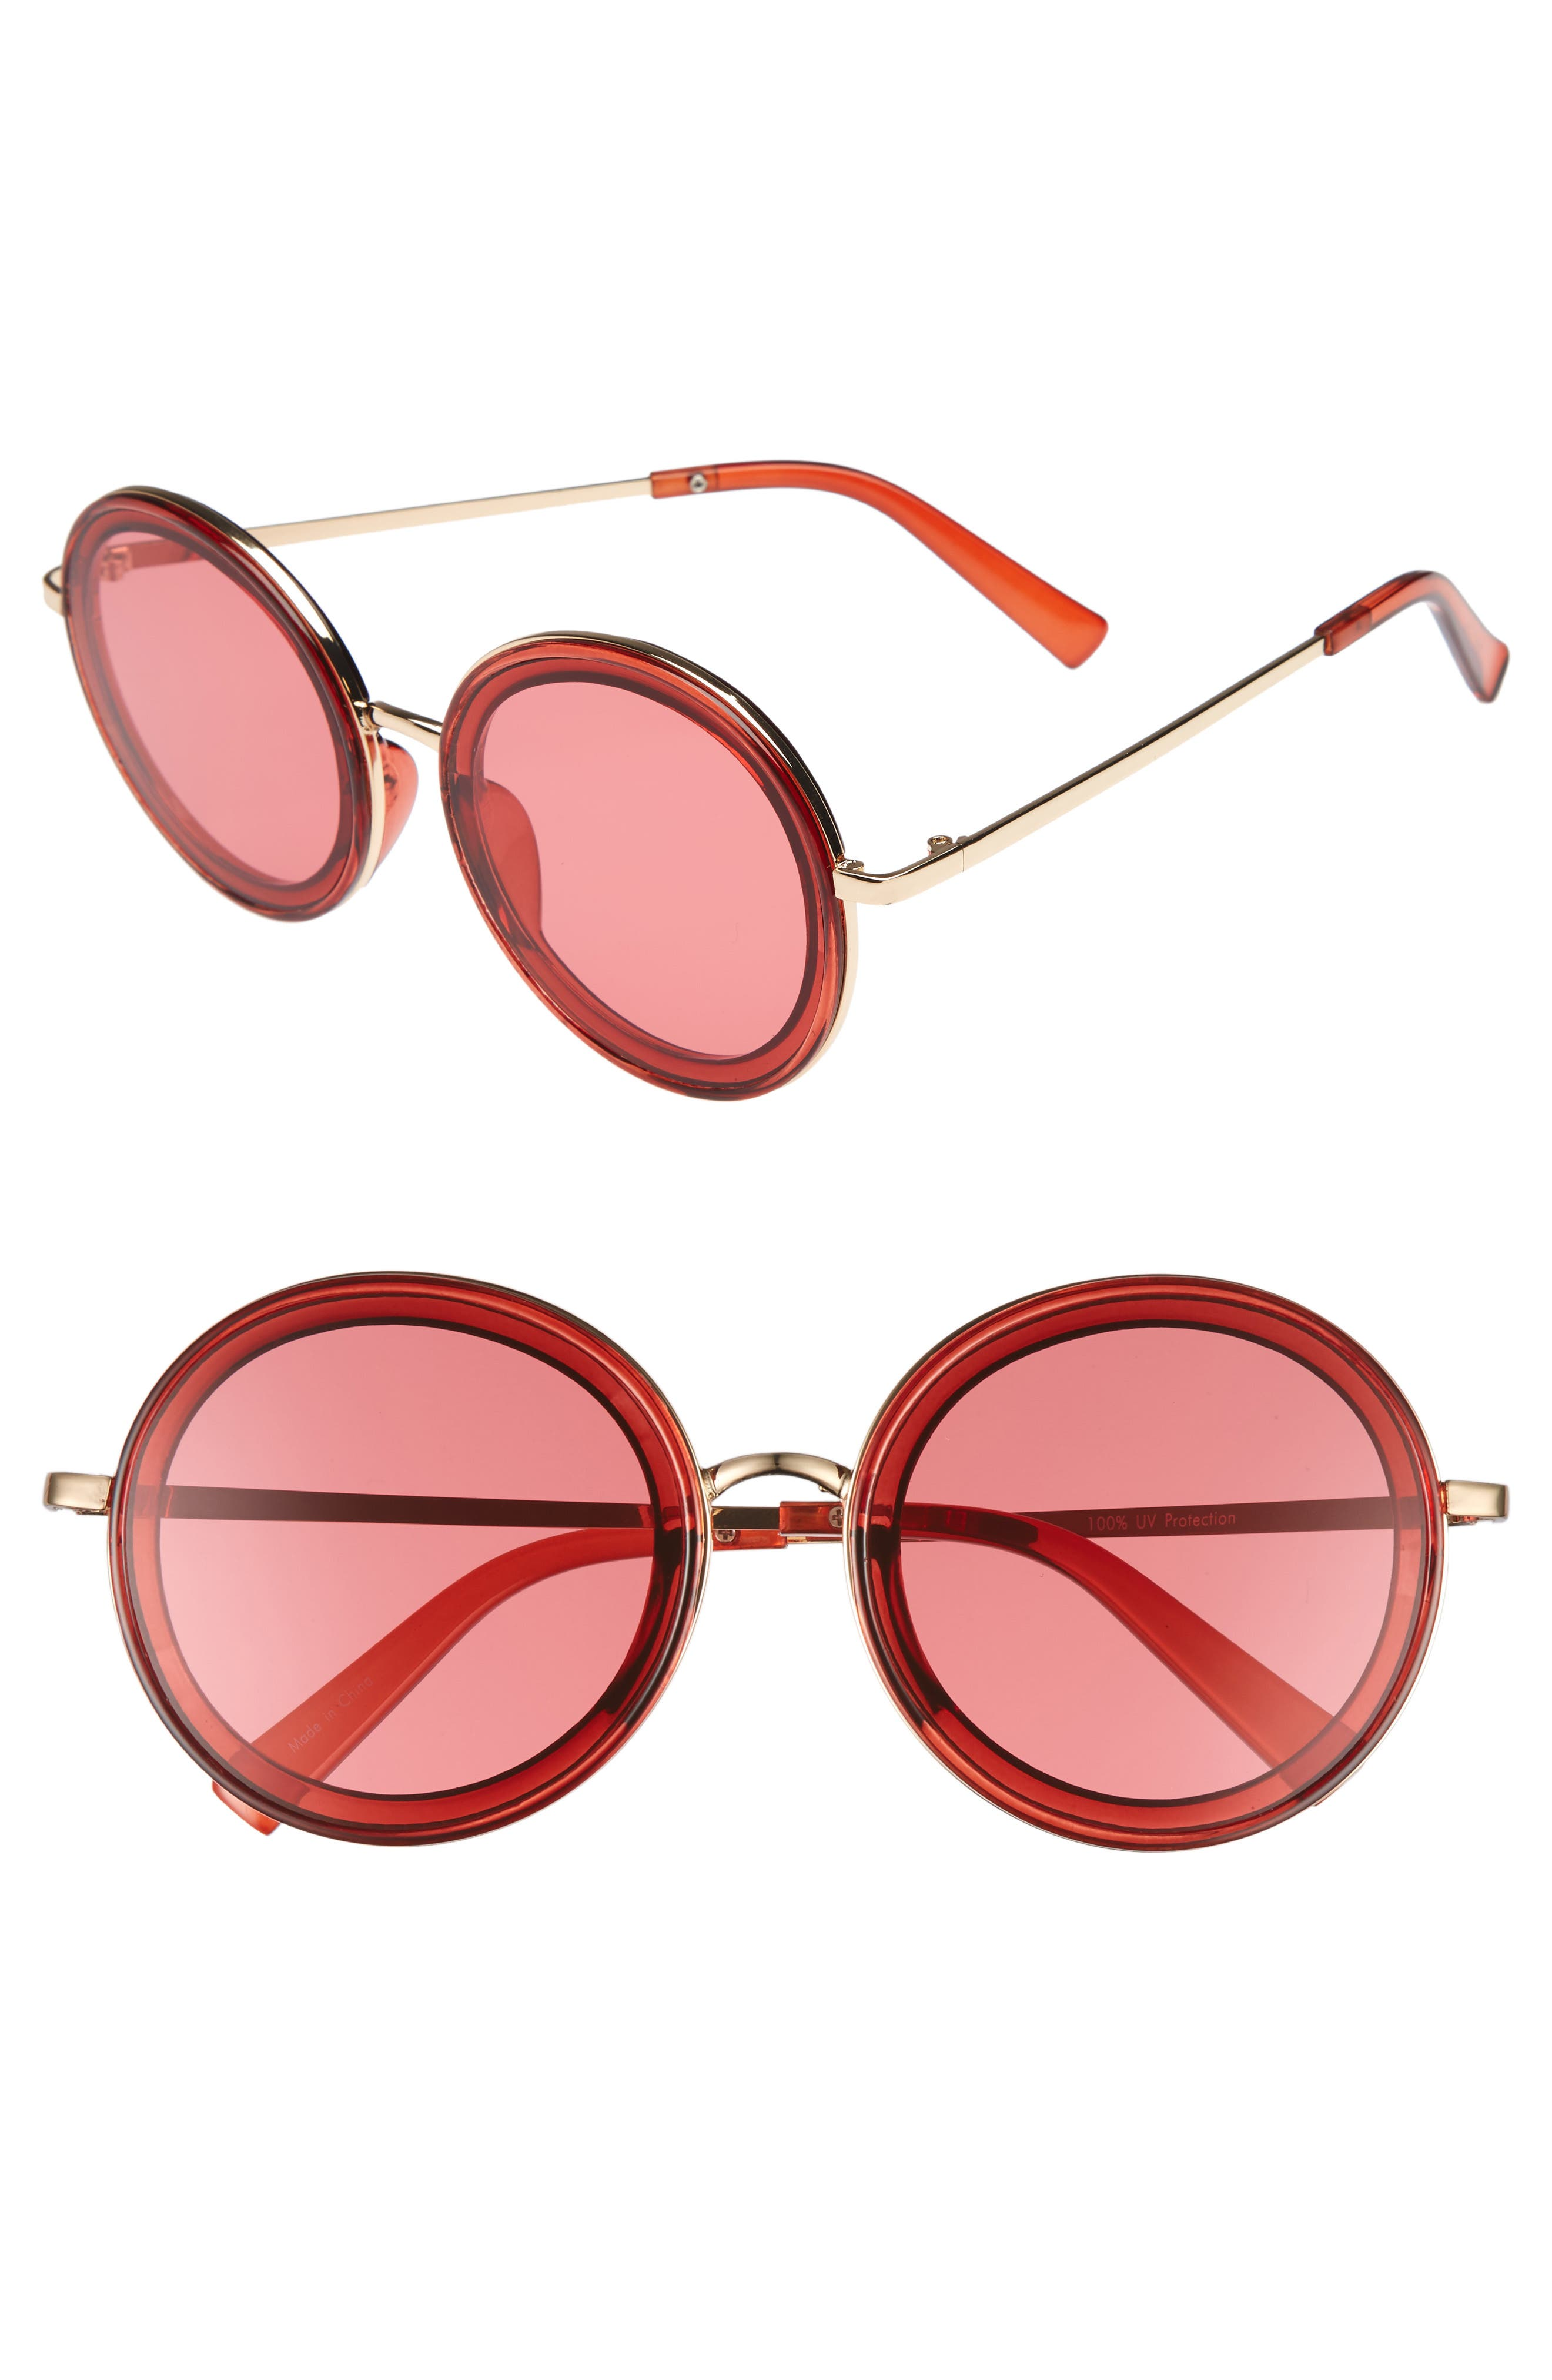 59mm Round Sunglasses,                             Main thumbnail 1, color,                             Pink